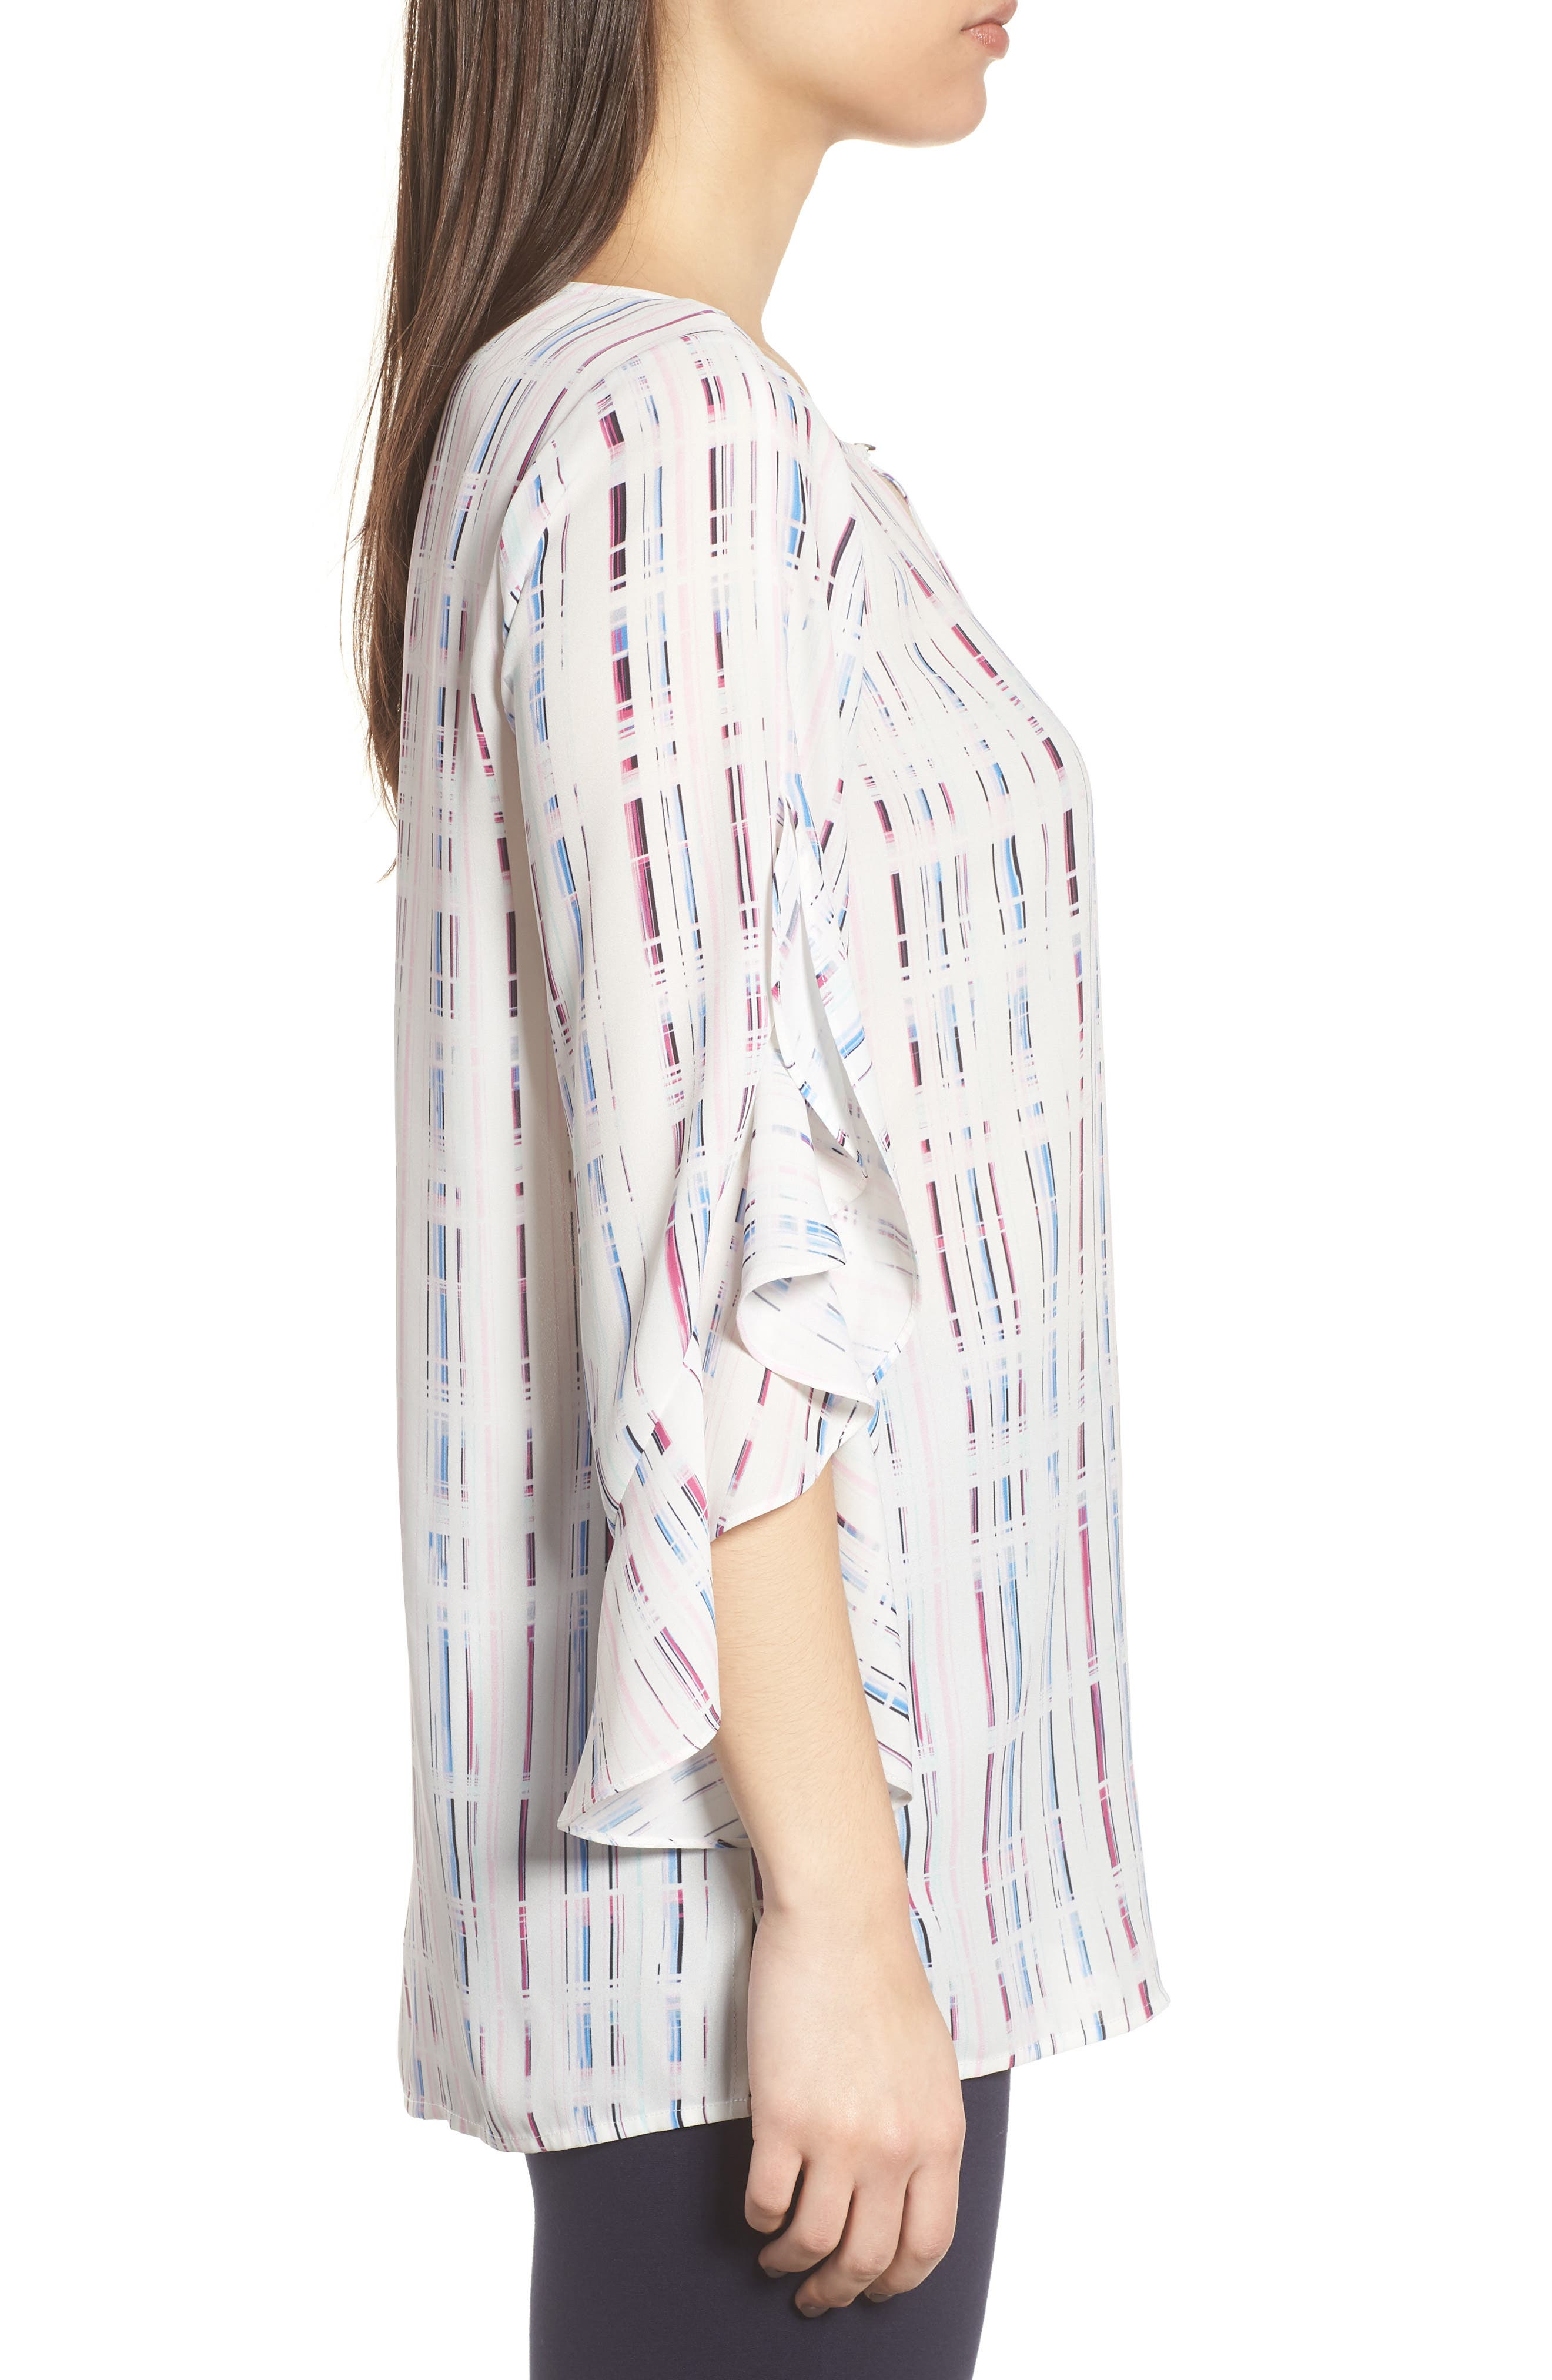 Prism Grid Print Blouse,                             Alternate thumbnail 3, color,                             900